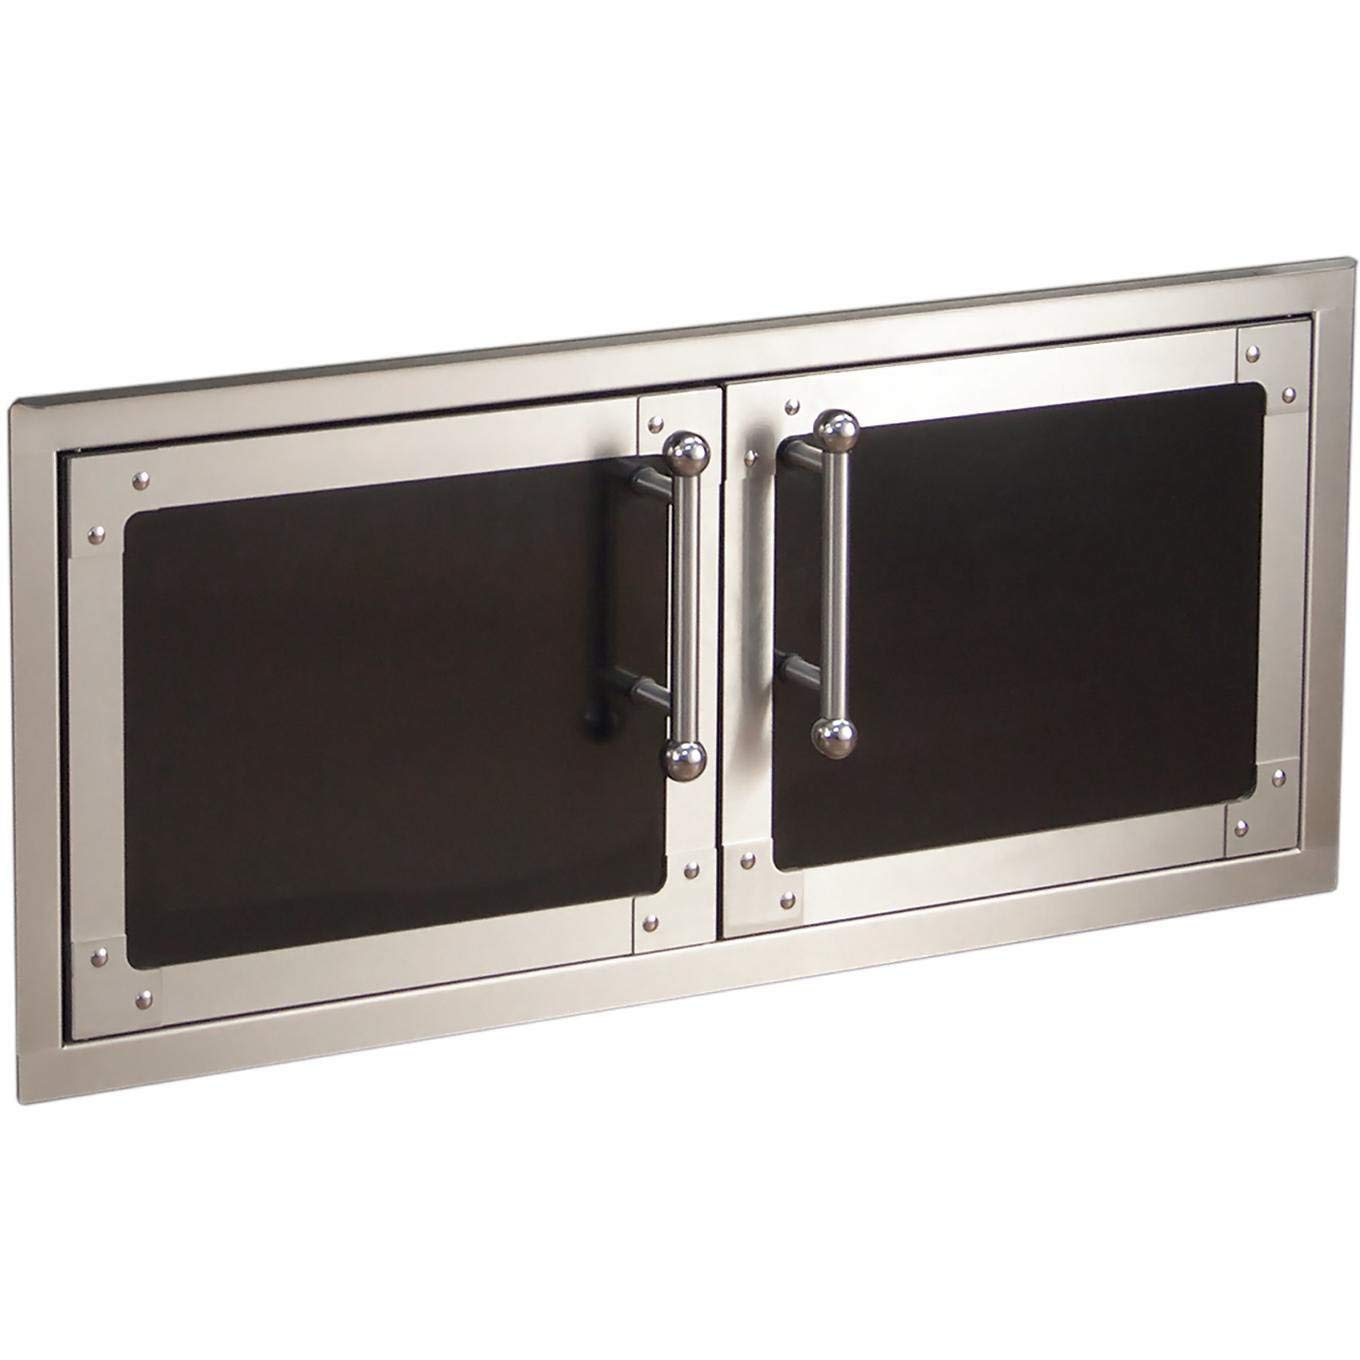 Fire Magic Echelon Black Diamond Reduced Height Double Access Doors With Soft Close - 53938hsc